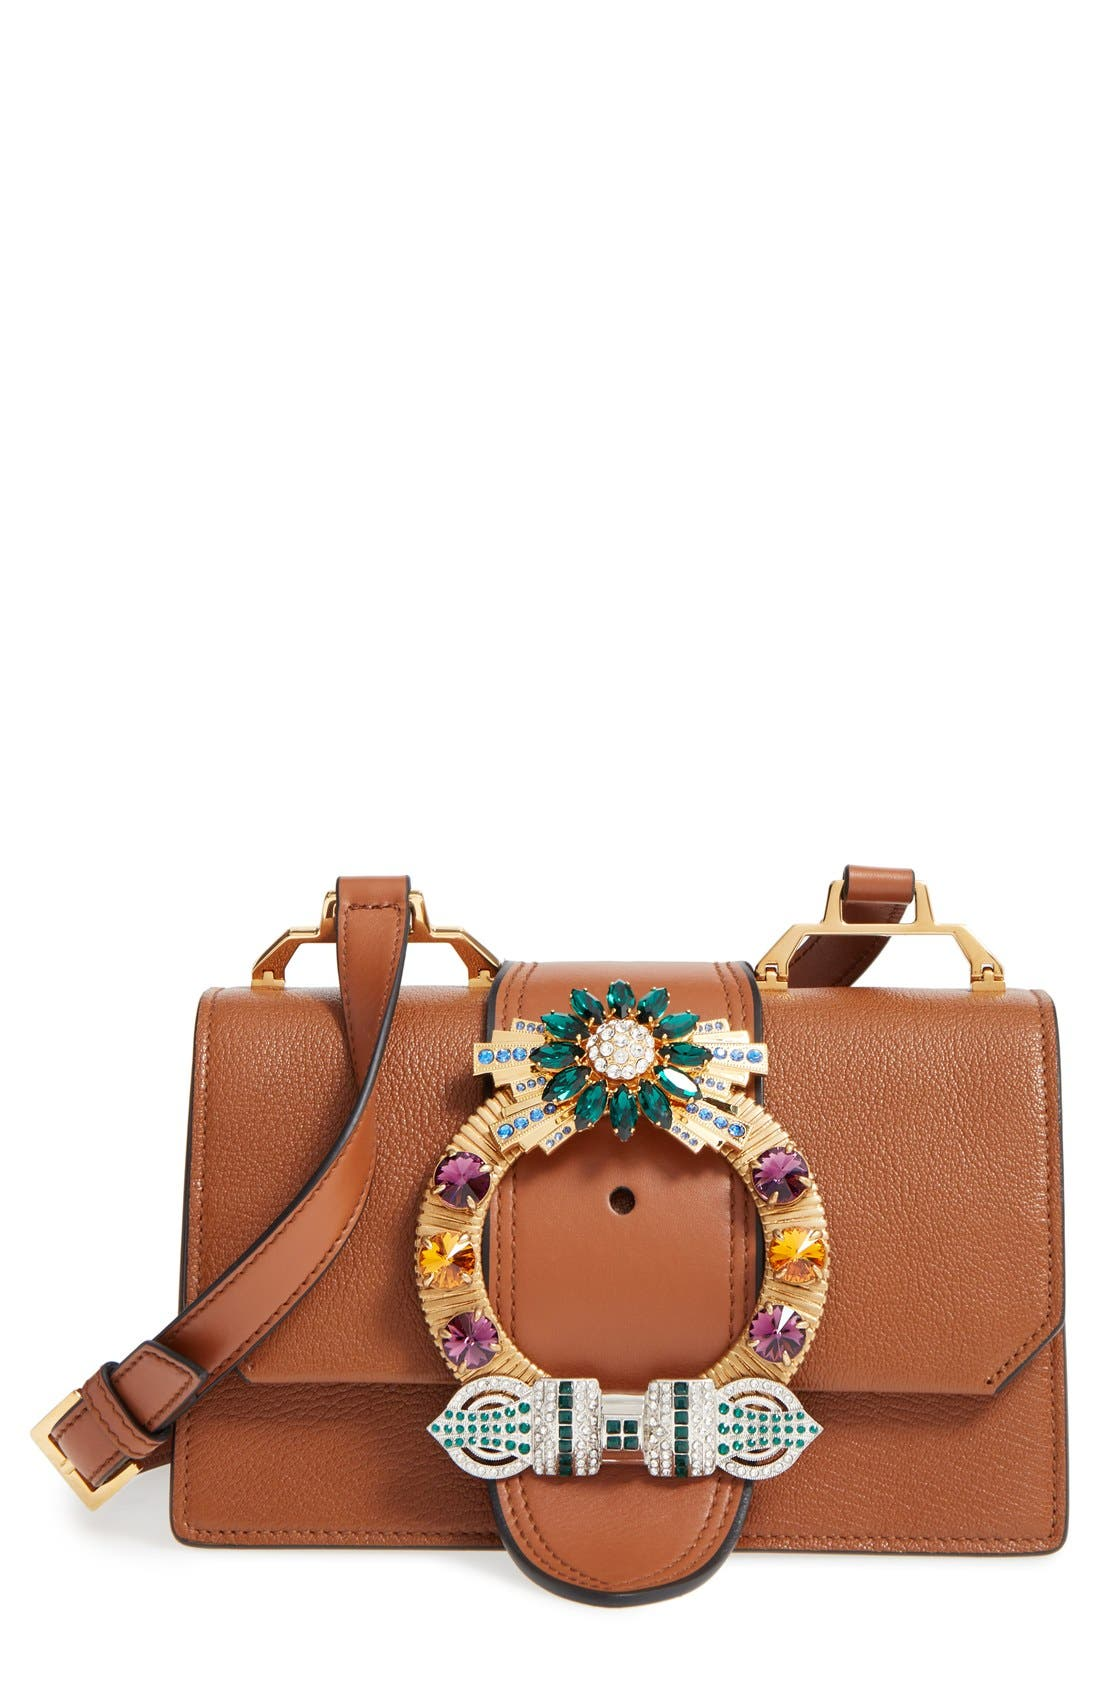 Alternate Image 1 Selected - Miu Miu 'Small Madras' Crystal Embellished Leather Shoulder Bag